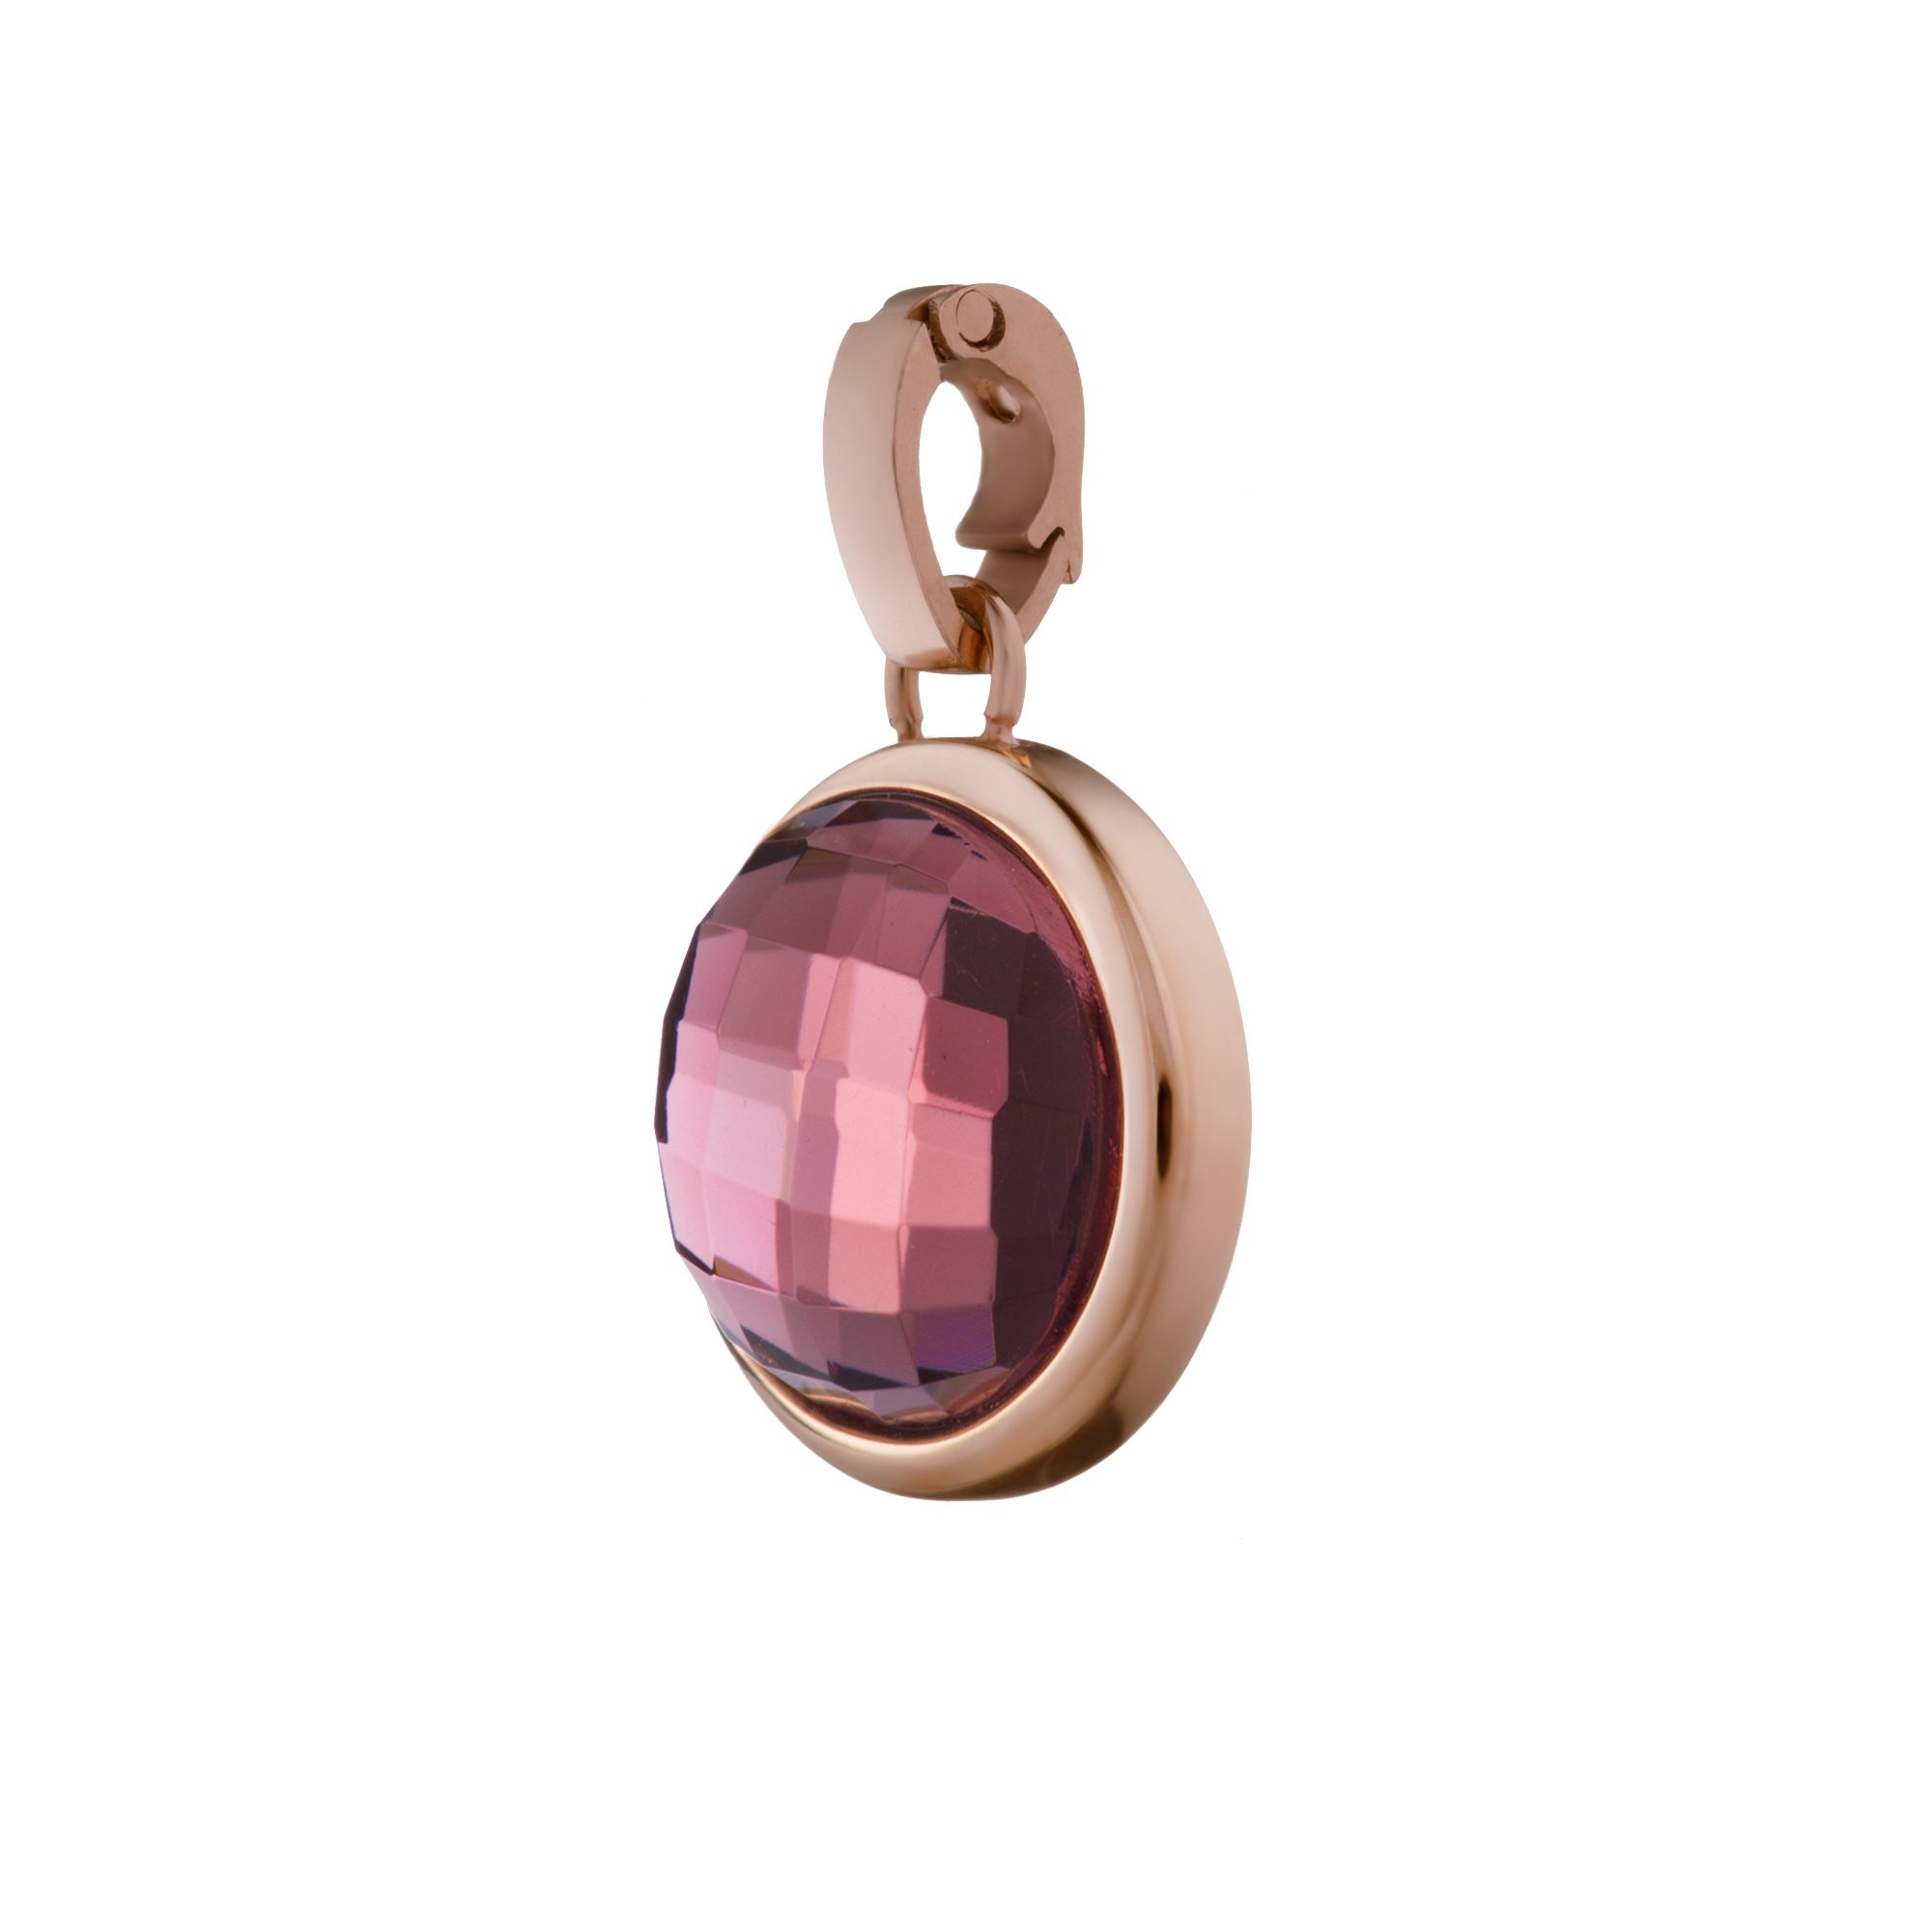 Devotion Signature Pendant Rose Gold, Purple Glass Pertaining To Most Up To Date Purple February Birthstone Locket Element Necklaces (Gallery 6 of 25)